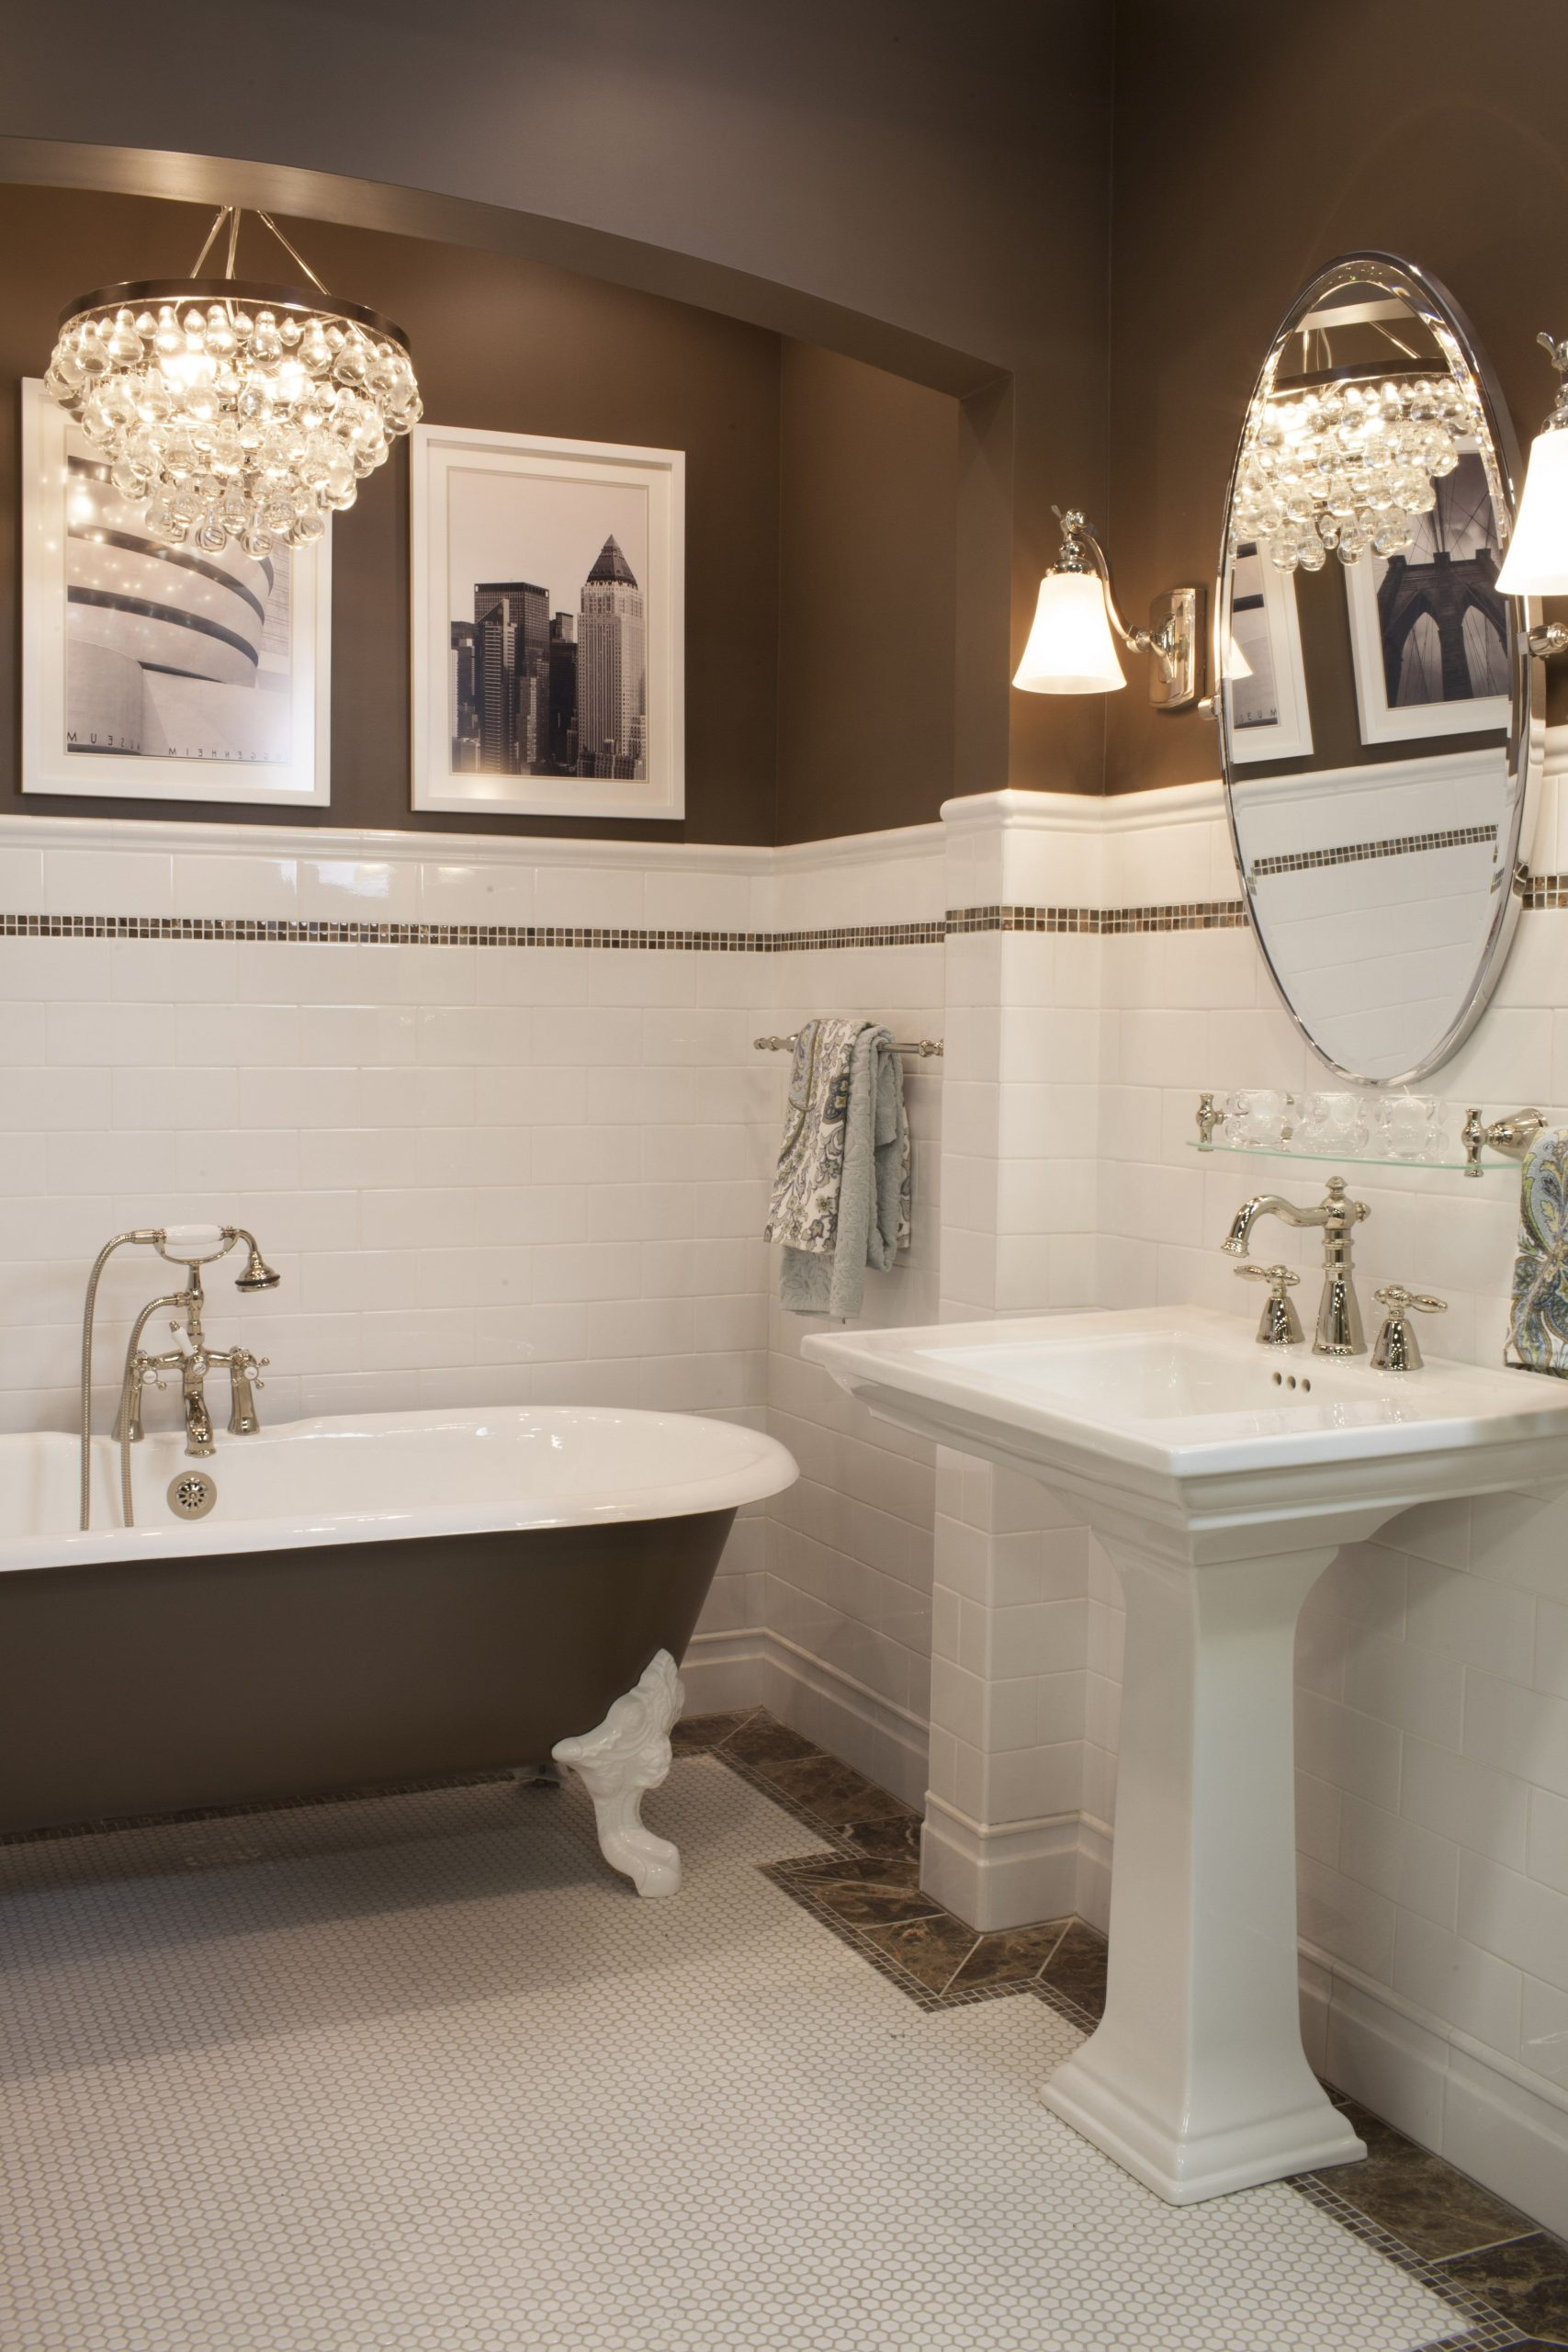 Ceramic Subway Tile Wainscoting And Hex Mosaic Is Always A 20+ Wainscoting Bathroom Pictures Inspirations